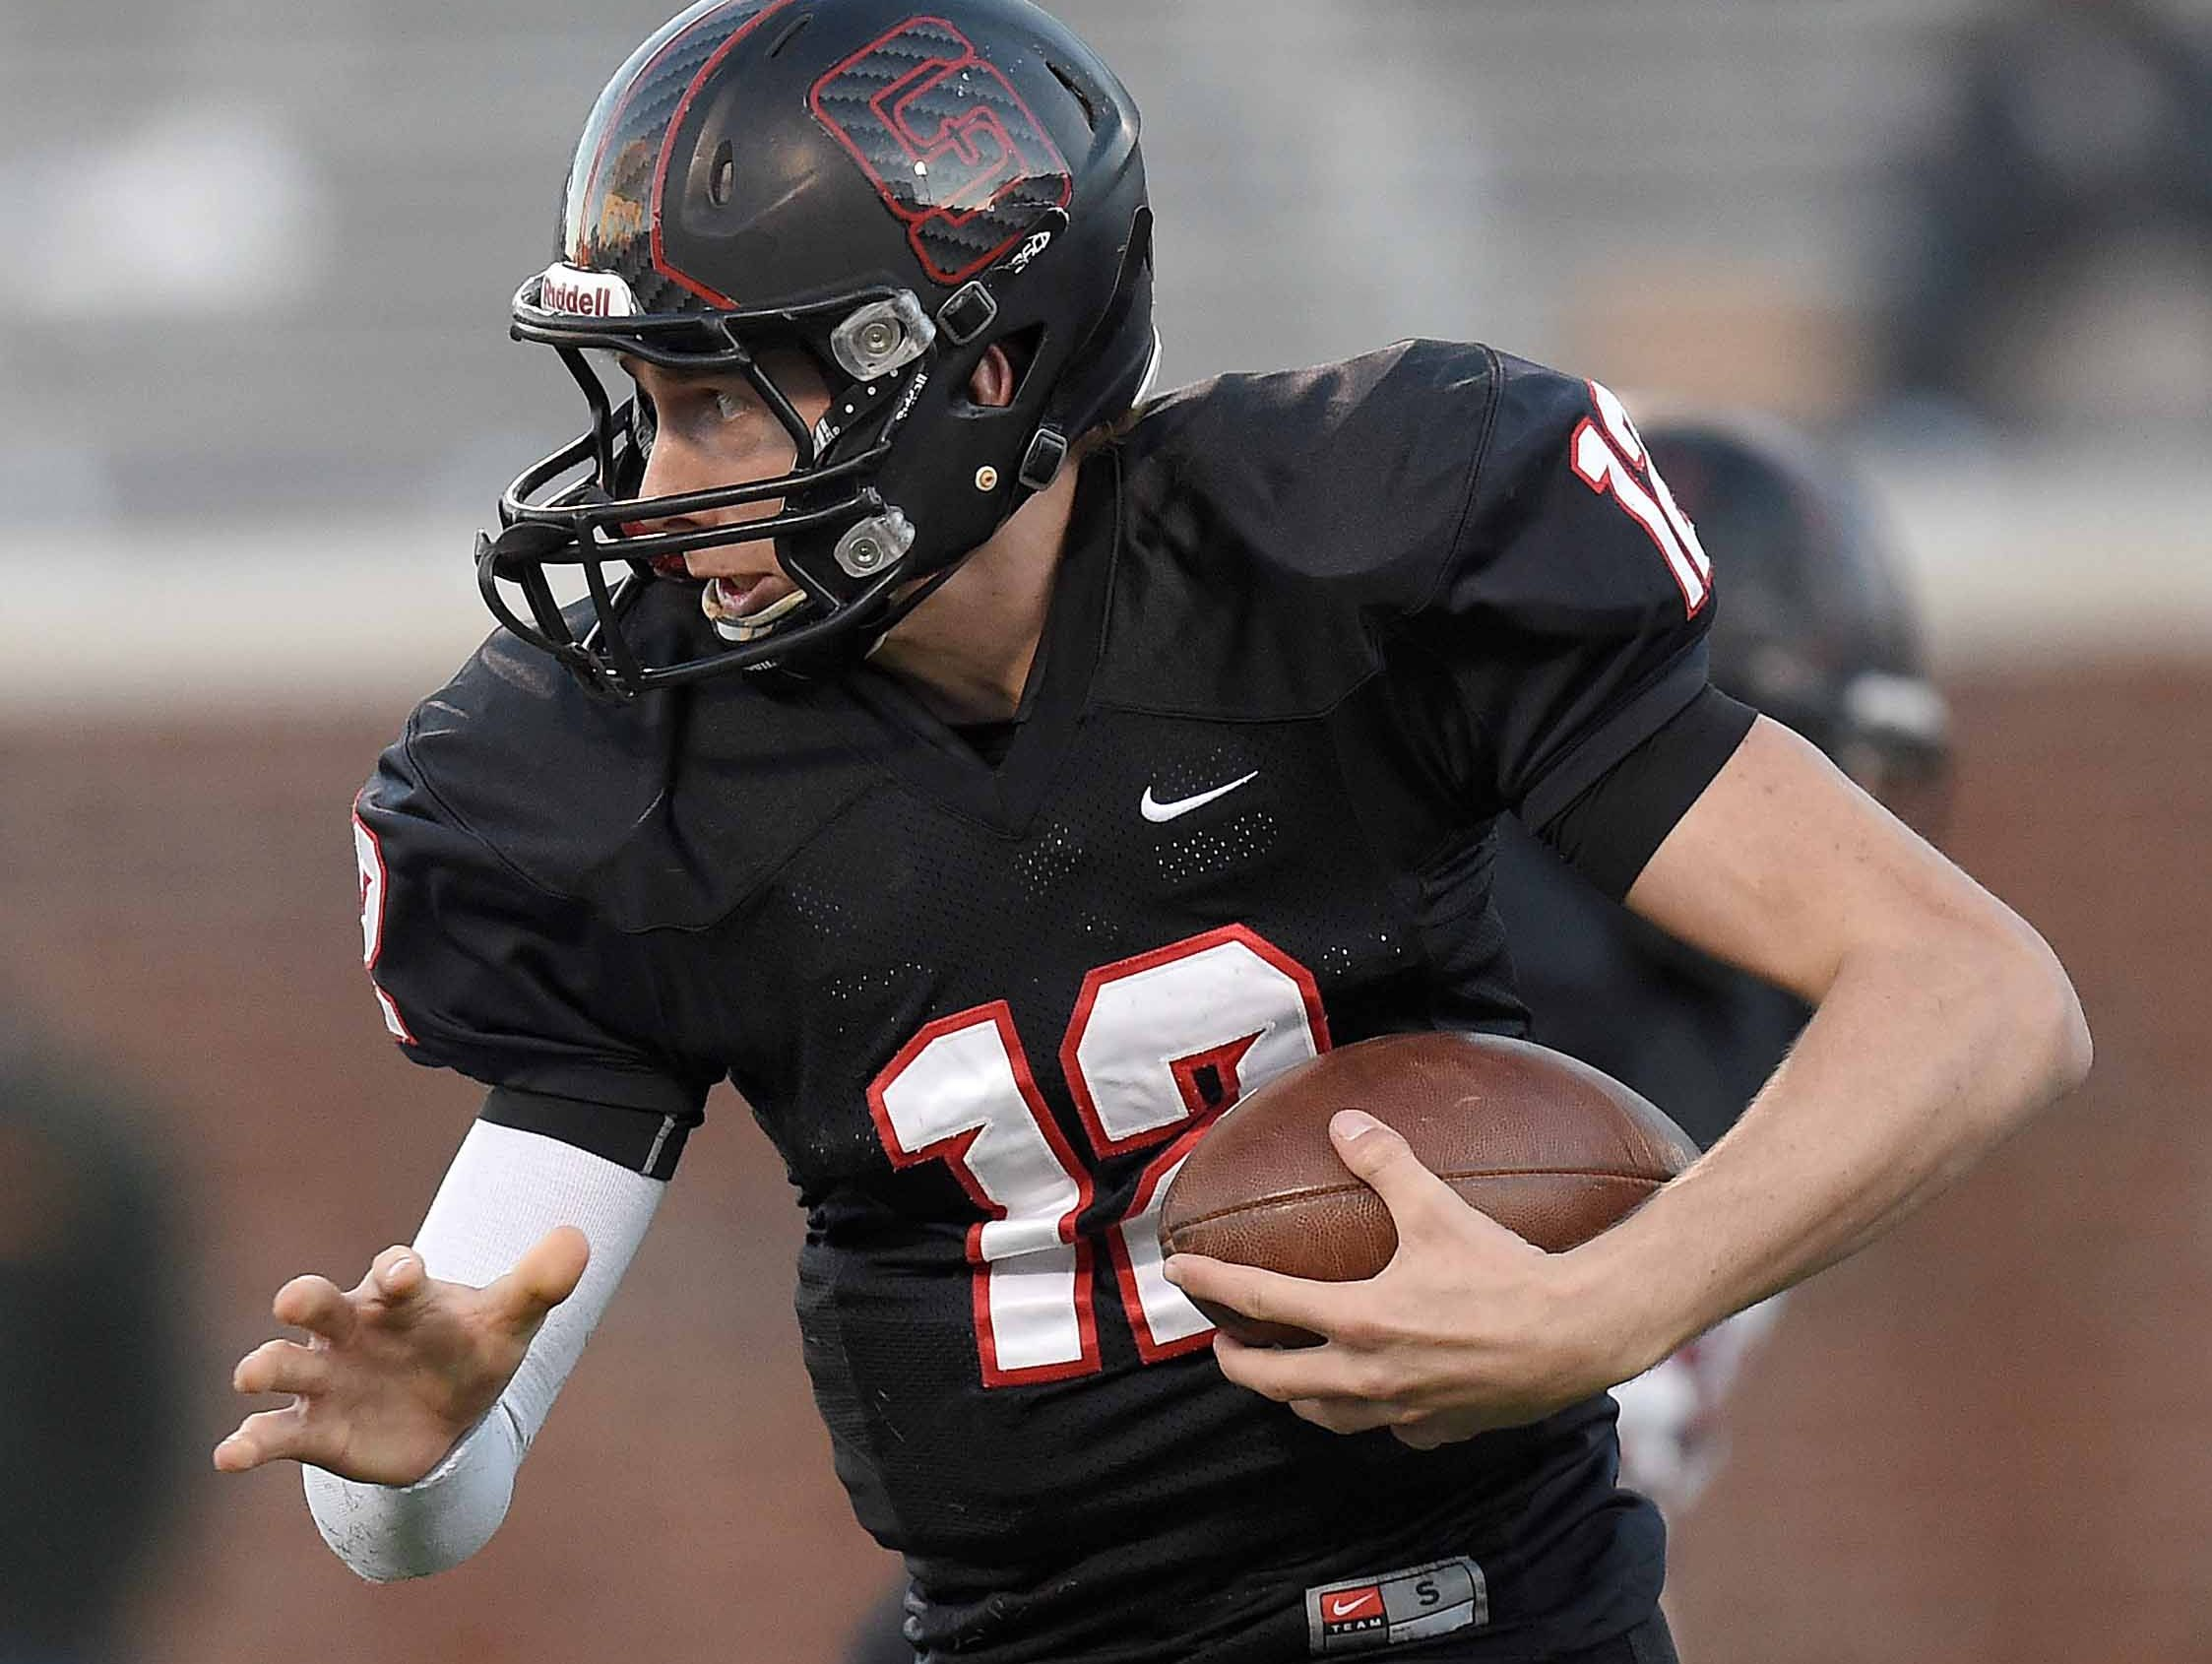 St. Stanislaus quarterback Myles Brennan is committed to LSU.